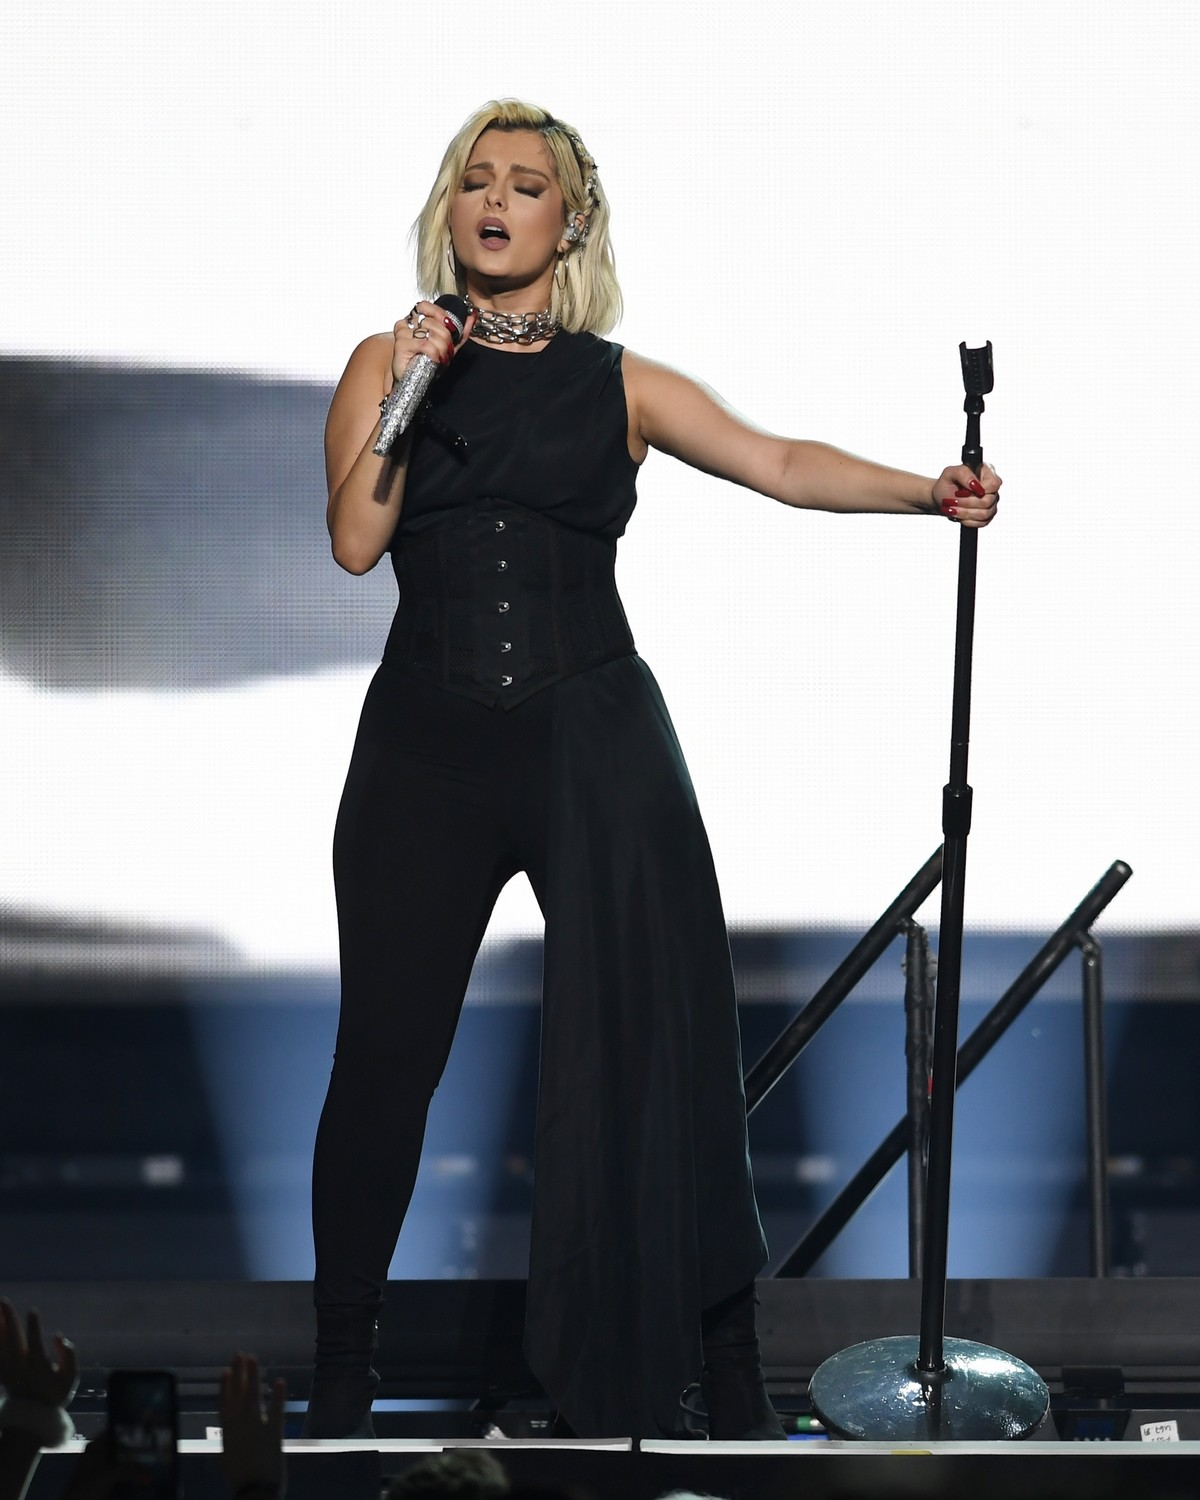 Bebe Rexha performs at the BB&T Center in Sunrise 2019/11/15 19